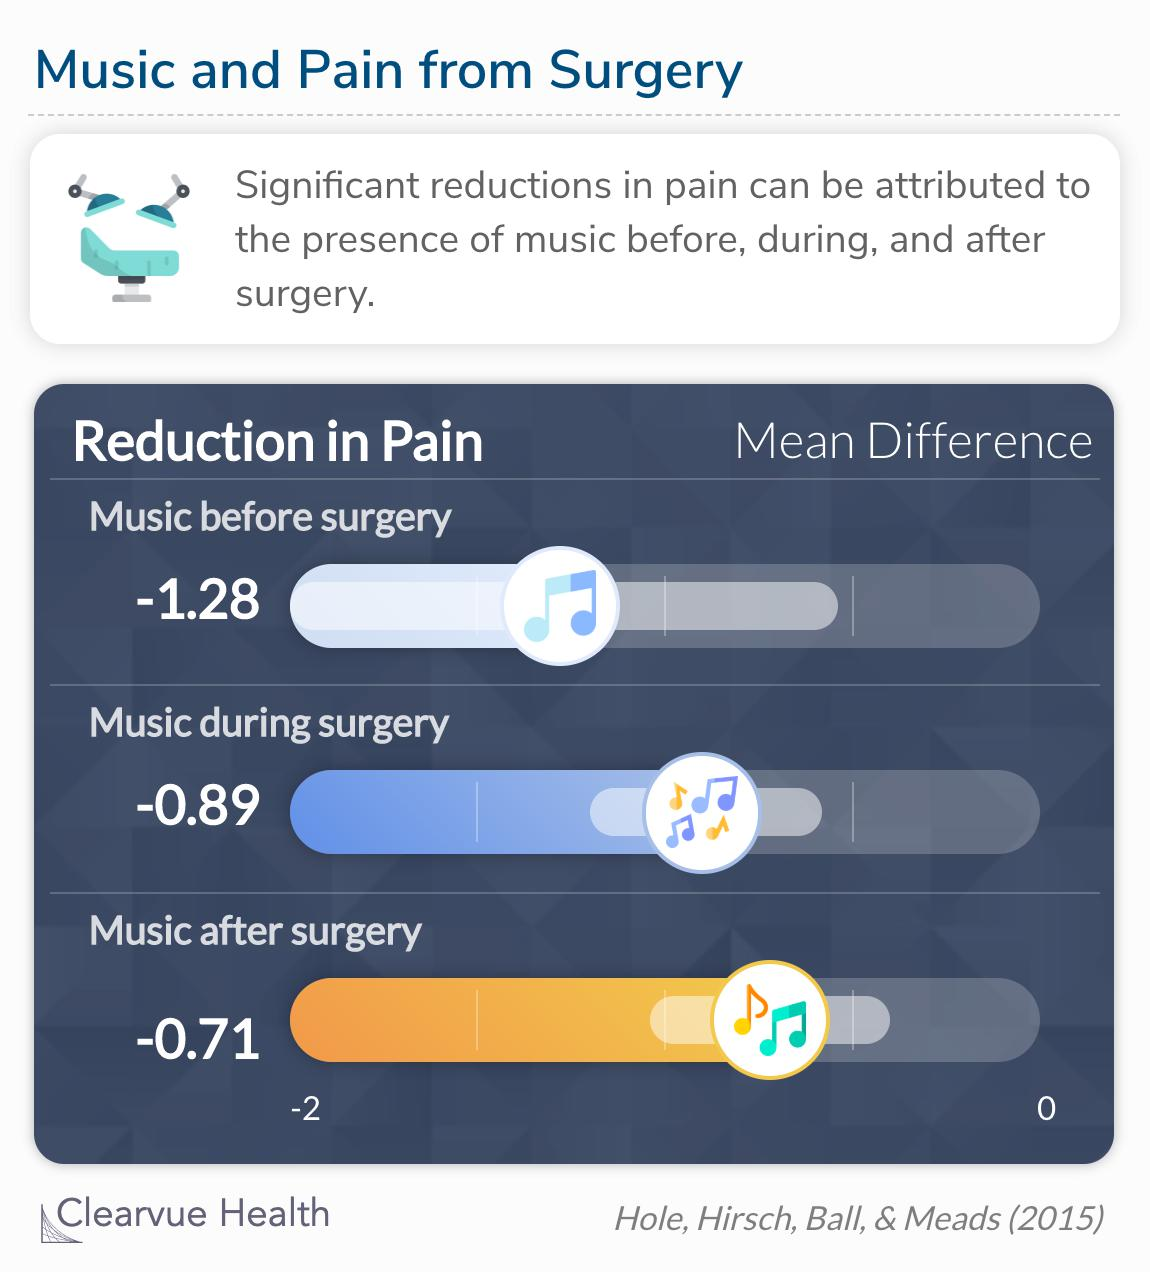 Significant reductions in pain can be attributed to the presence of music pre, intra, and post-operatively.